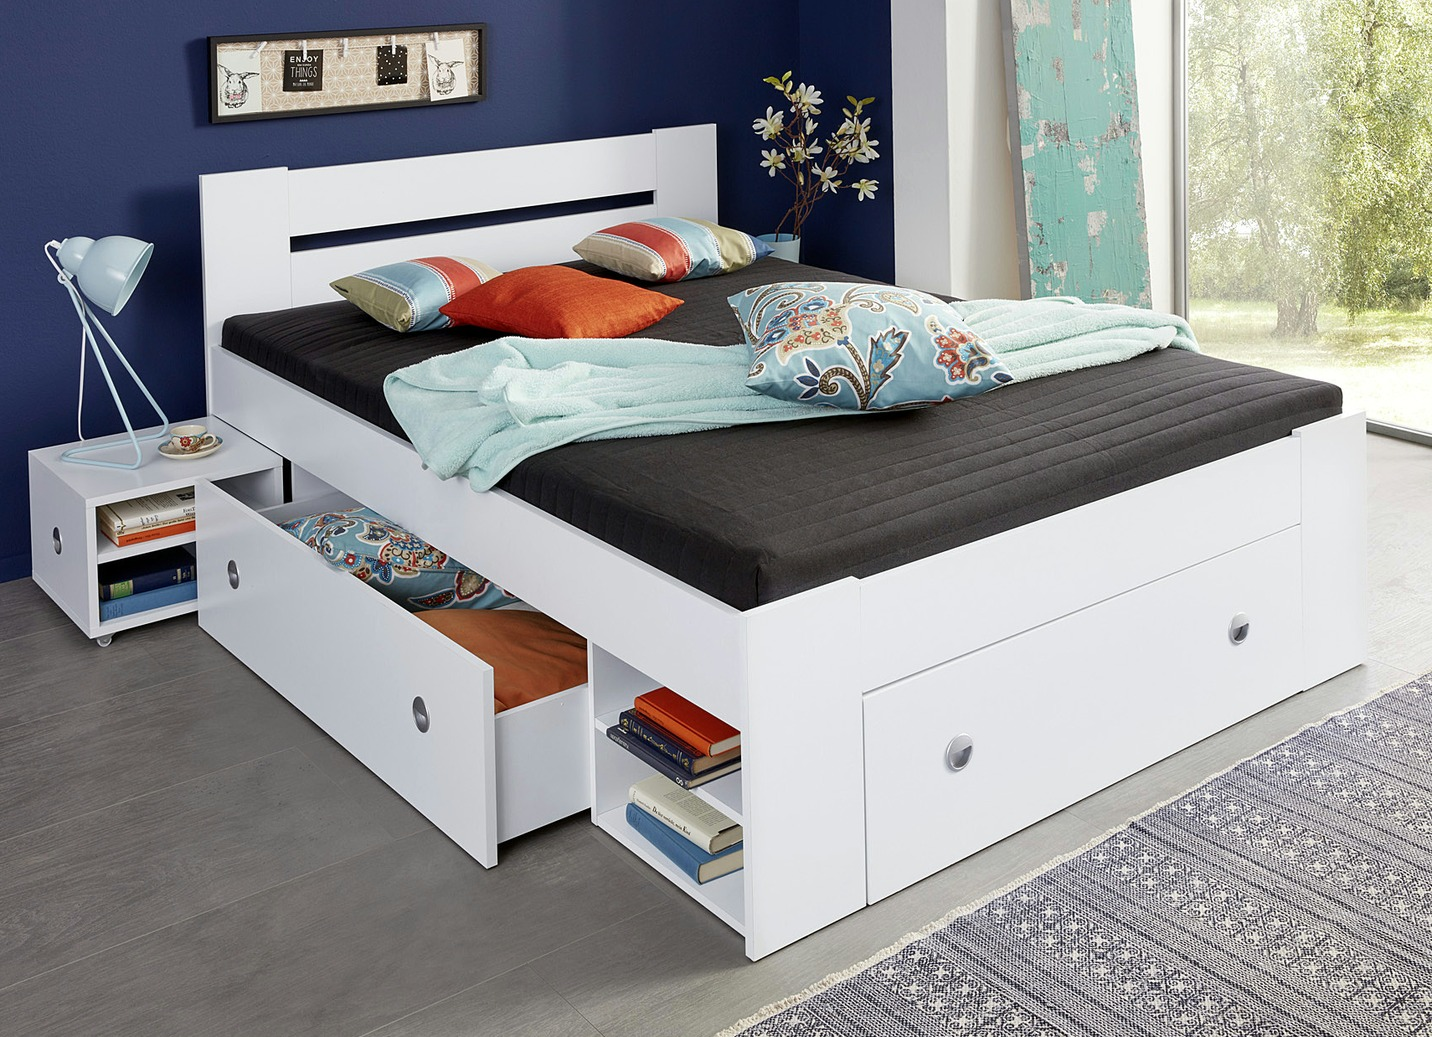 futonbett verschiedene ausf hrungen betten bader. Black Bedroom Furniture Sets. Home Design Ideas